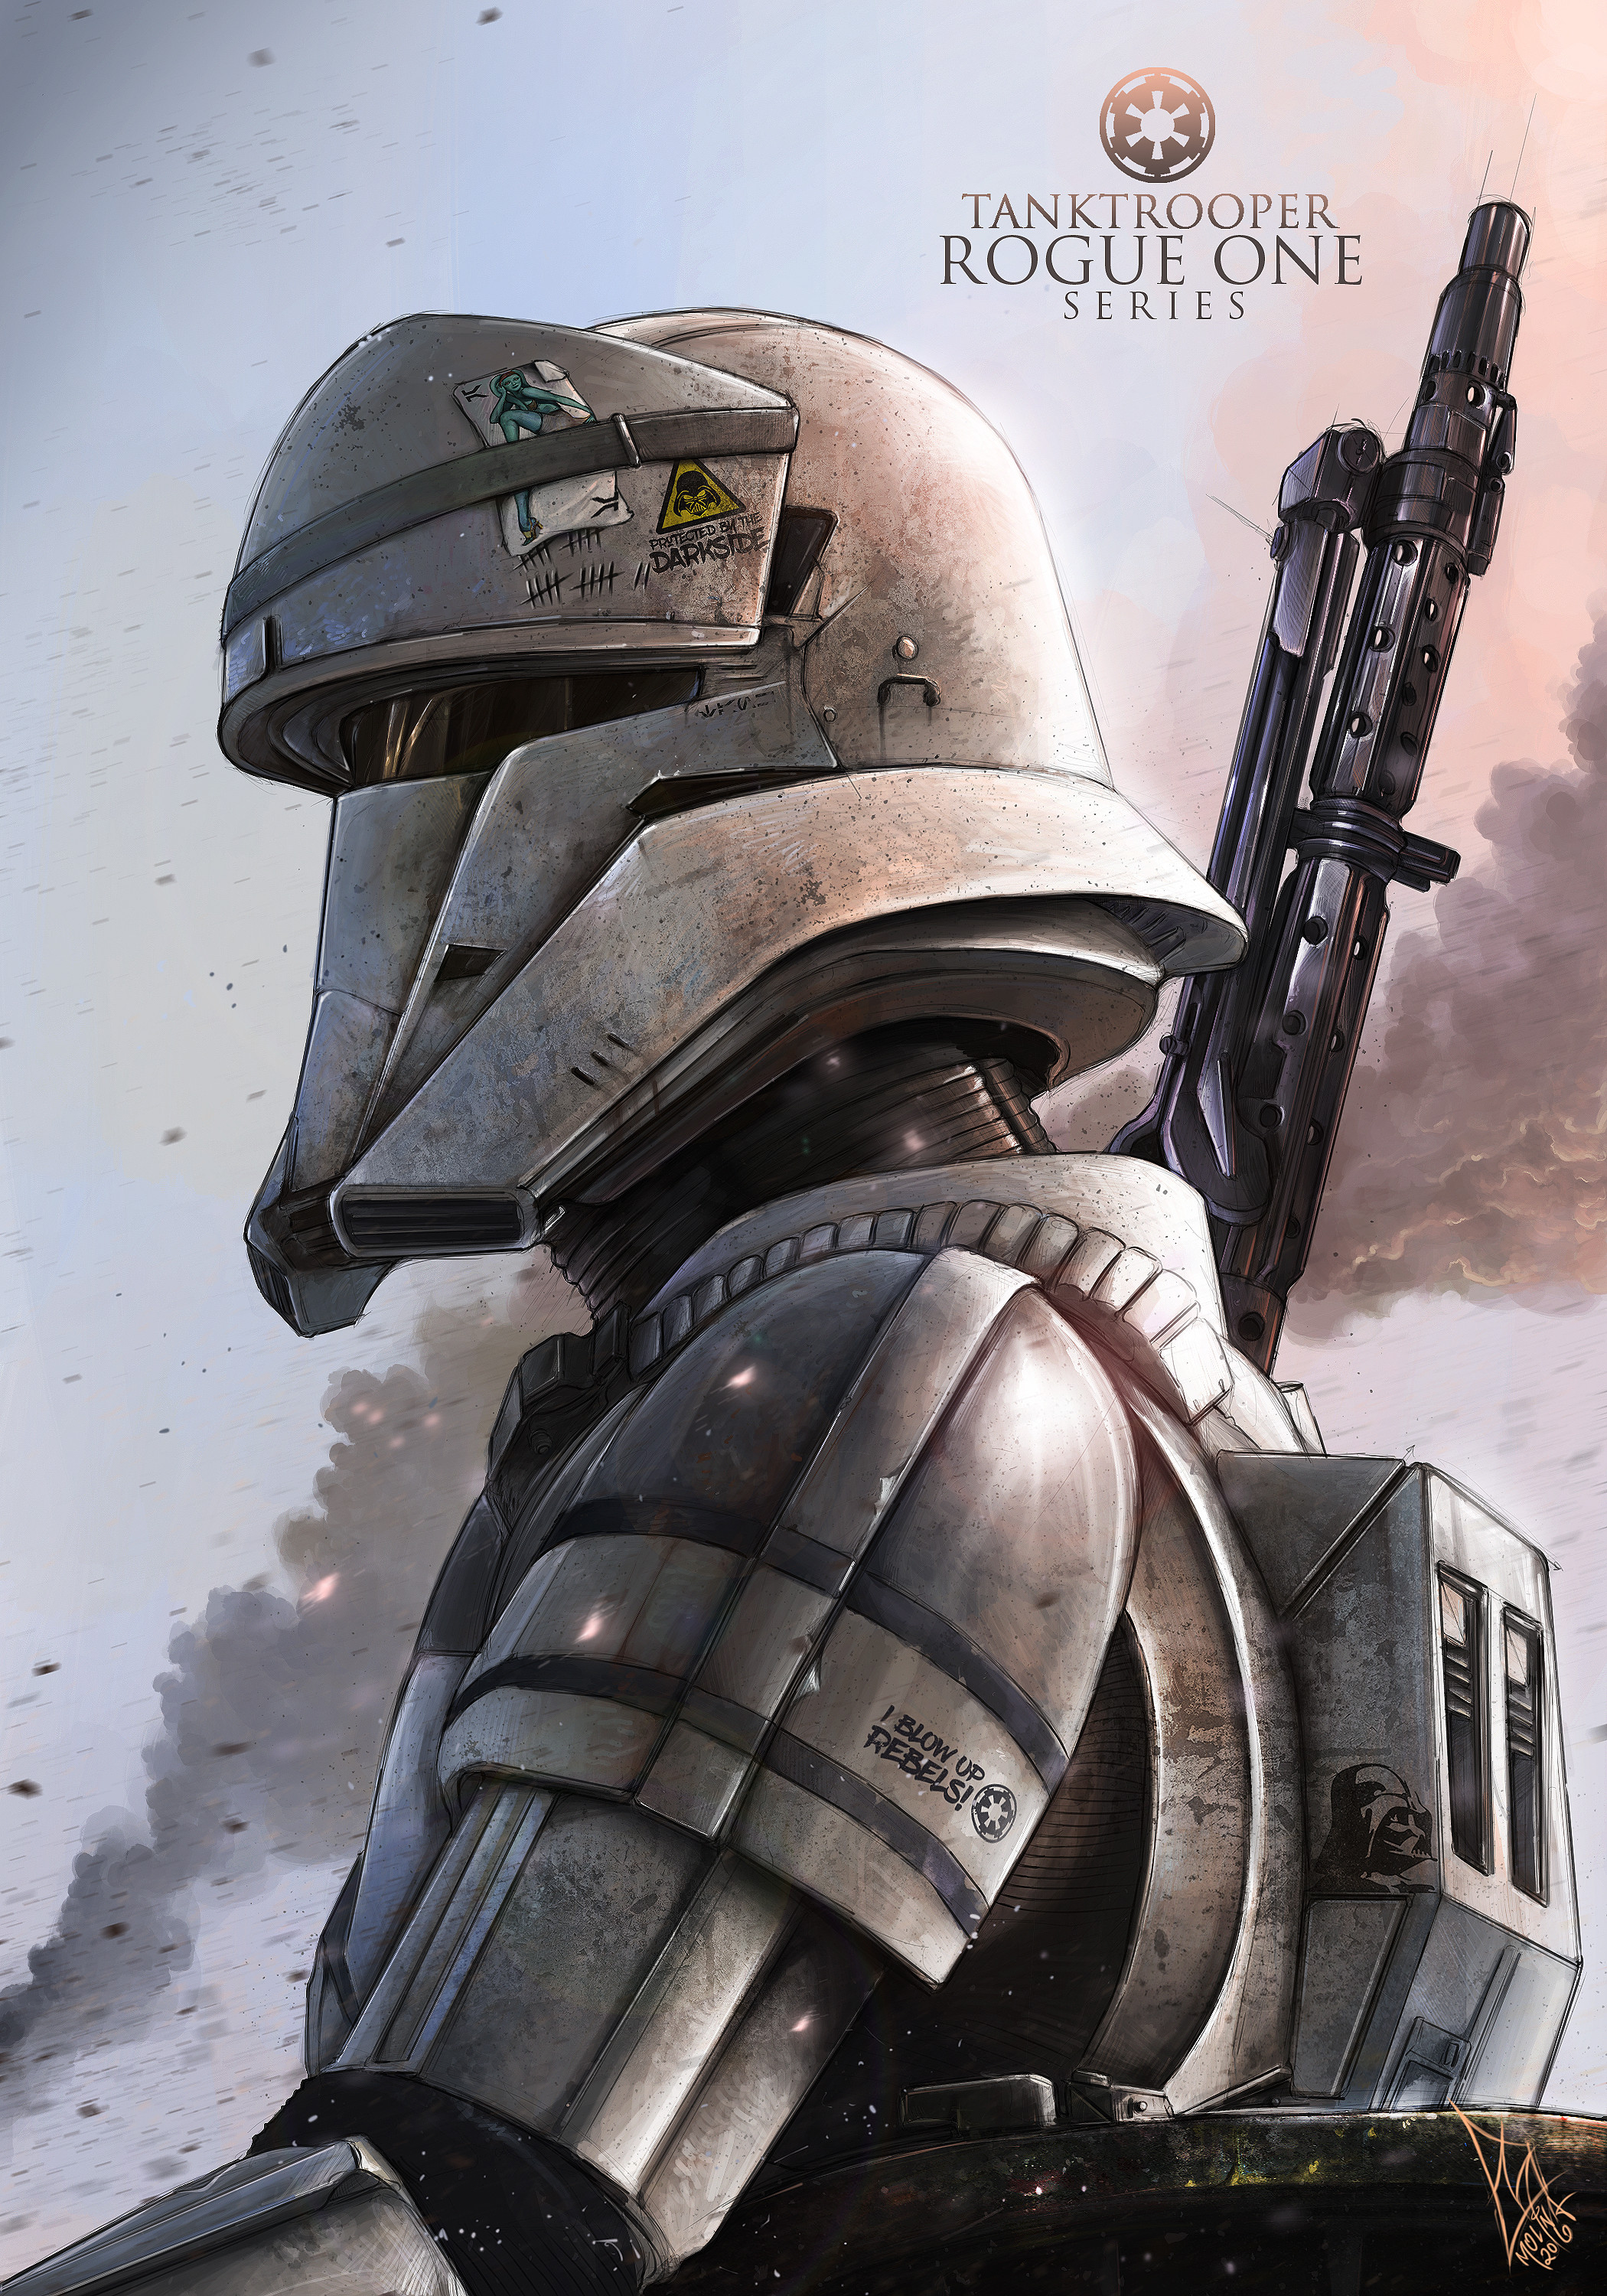 The Tank Trooper - Rogue One Series